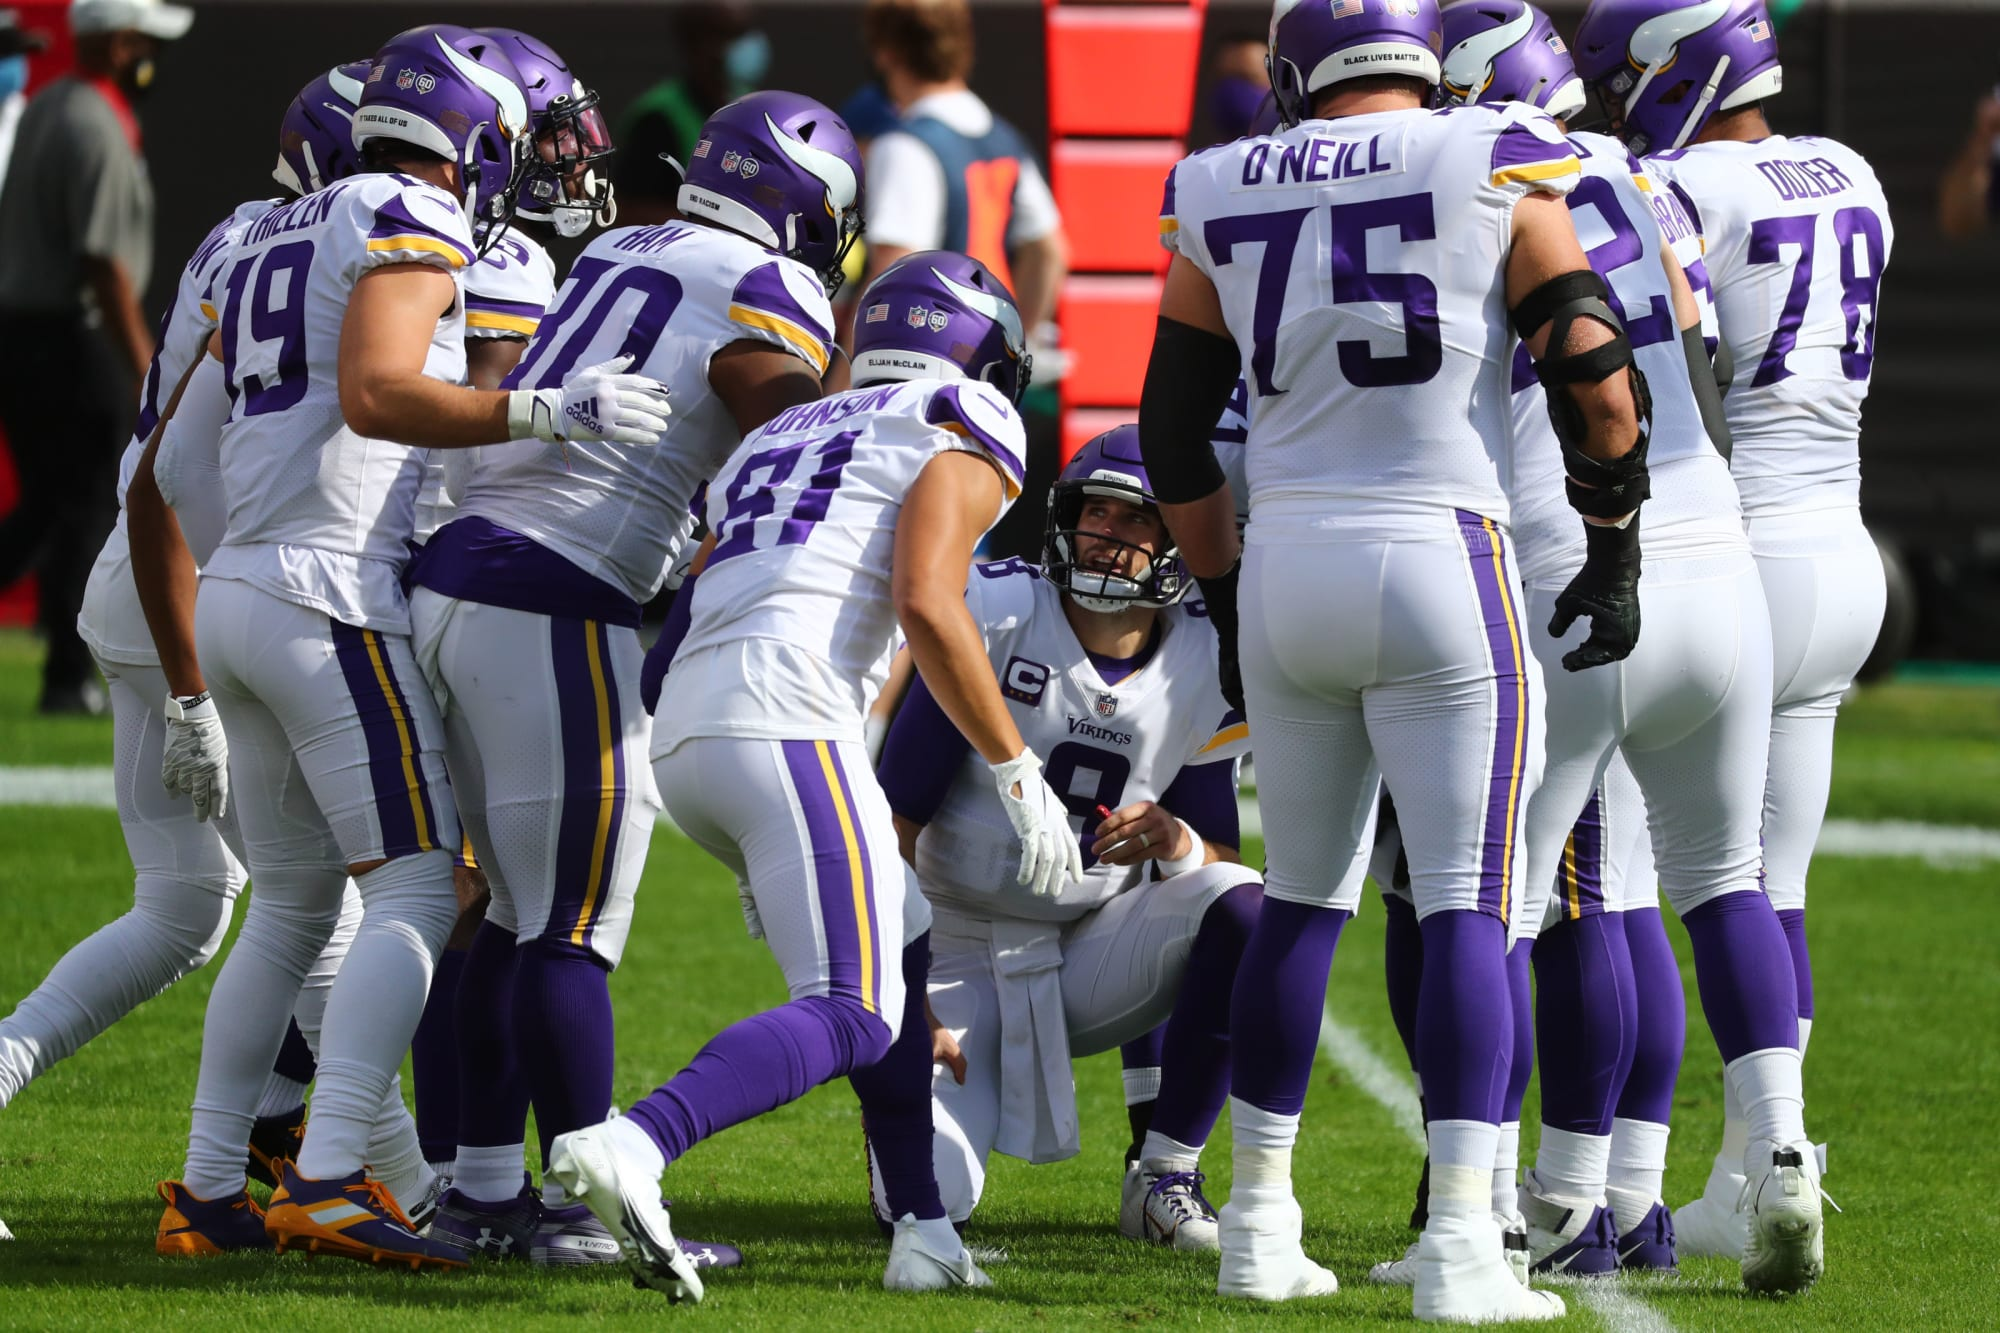 How Bad Are The Vikings Playoff Chances After Their Loss To The Bucs